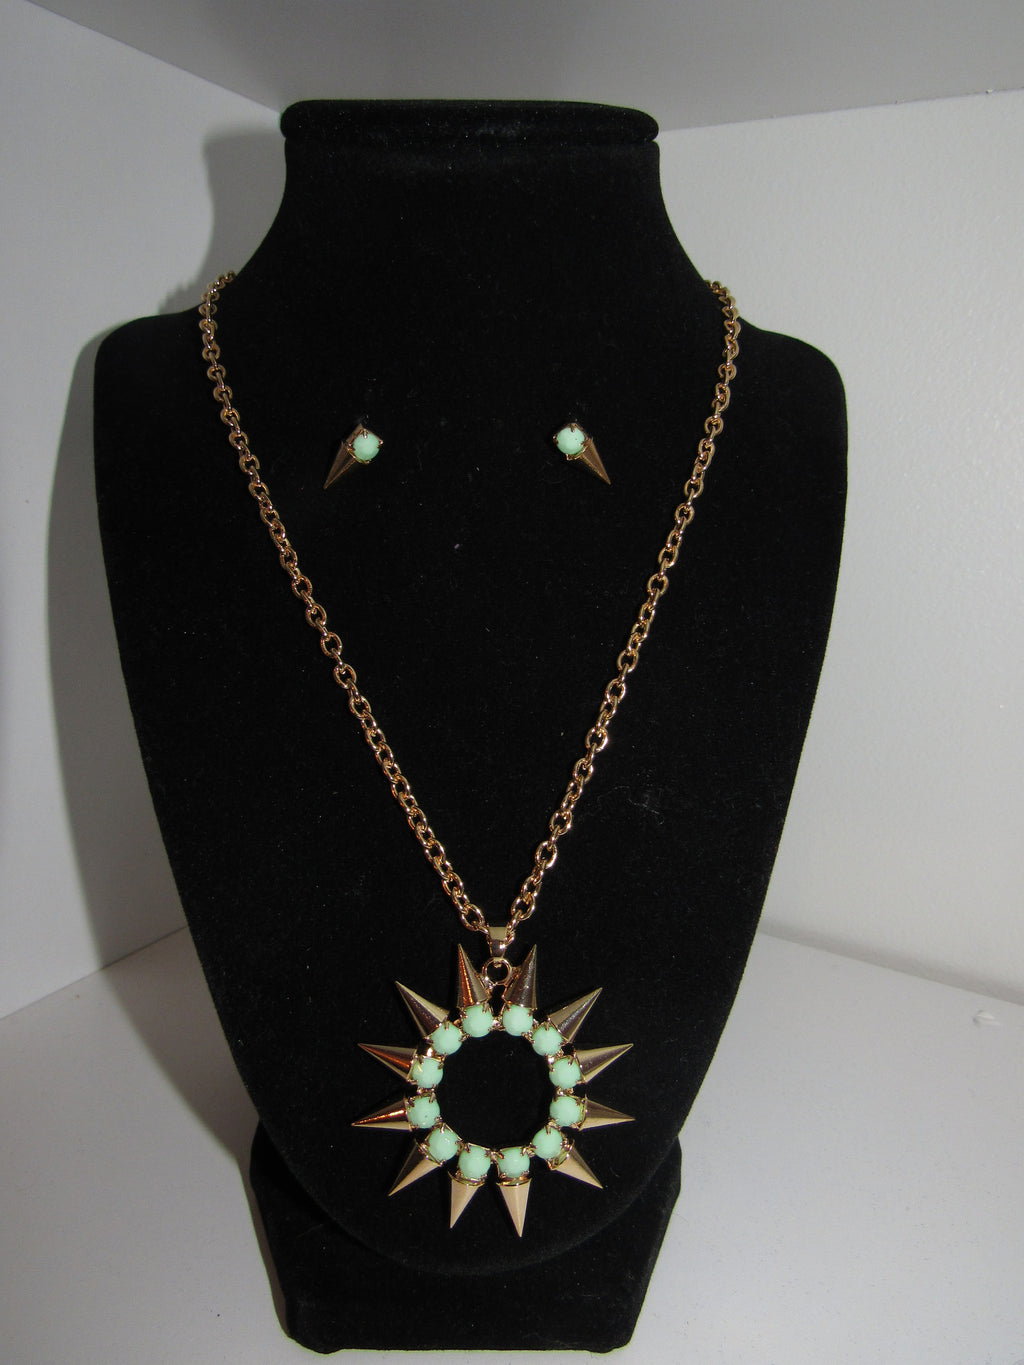 Spiked Punch Necklace/ Earring Set - Teal